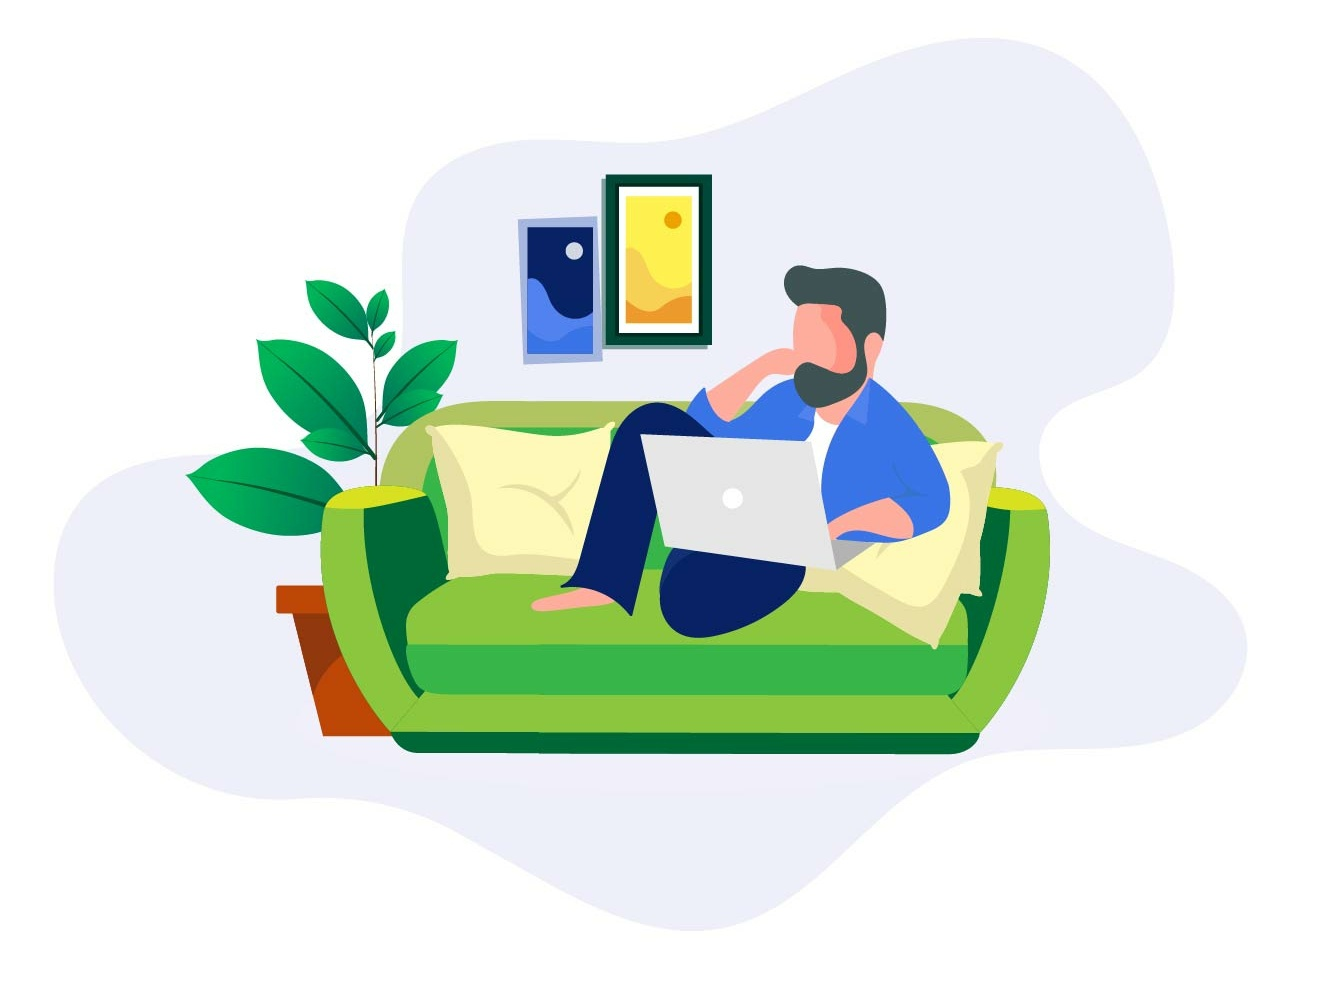 work from home illustration by Sanket on Dribbble